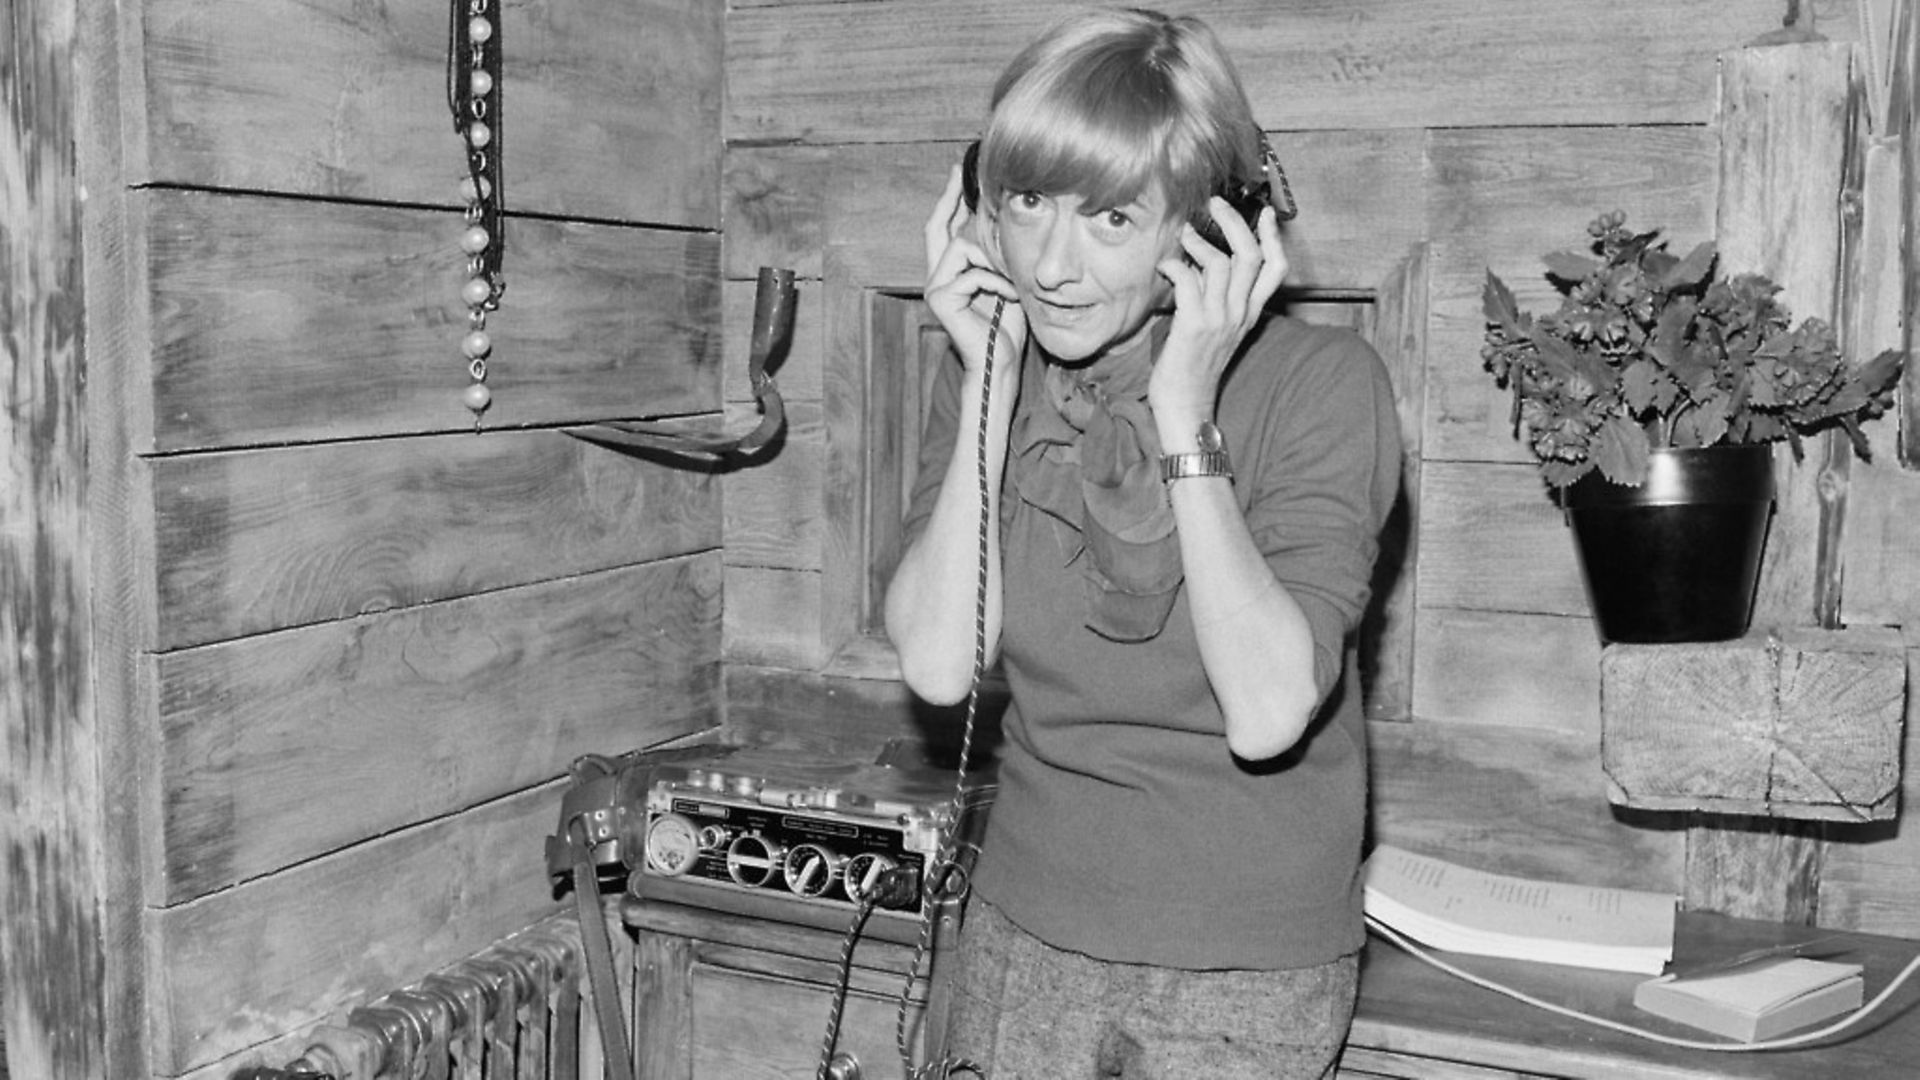 French author-turned-director Francoise Sagan listens to music on the film set of her first film Les Fougeres Bleues. (Photo by Solange Cazier-Charpentier/Sygma/Sygma via Getty Images) - Credit: Sygma via Getty Images